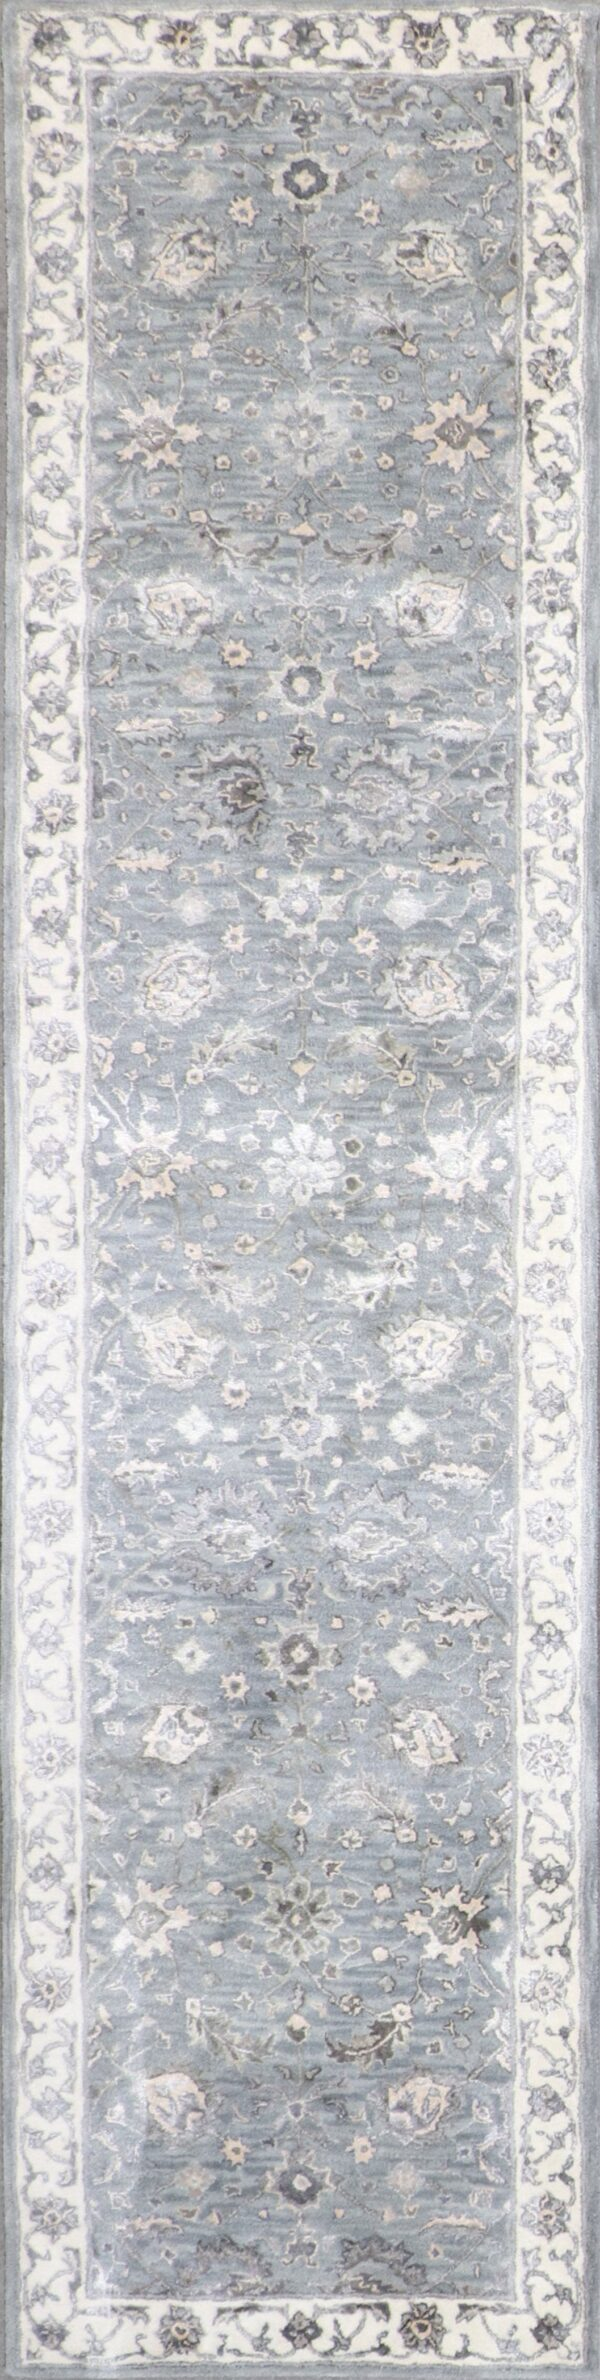 3'x12' Decorative Vintage Wool & Silk Hand-Tufted Rug - Direct Rug Import | Rugs in Chicago, Indiana,South Bend,Granger